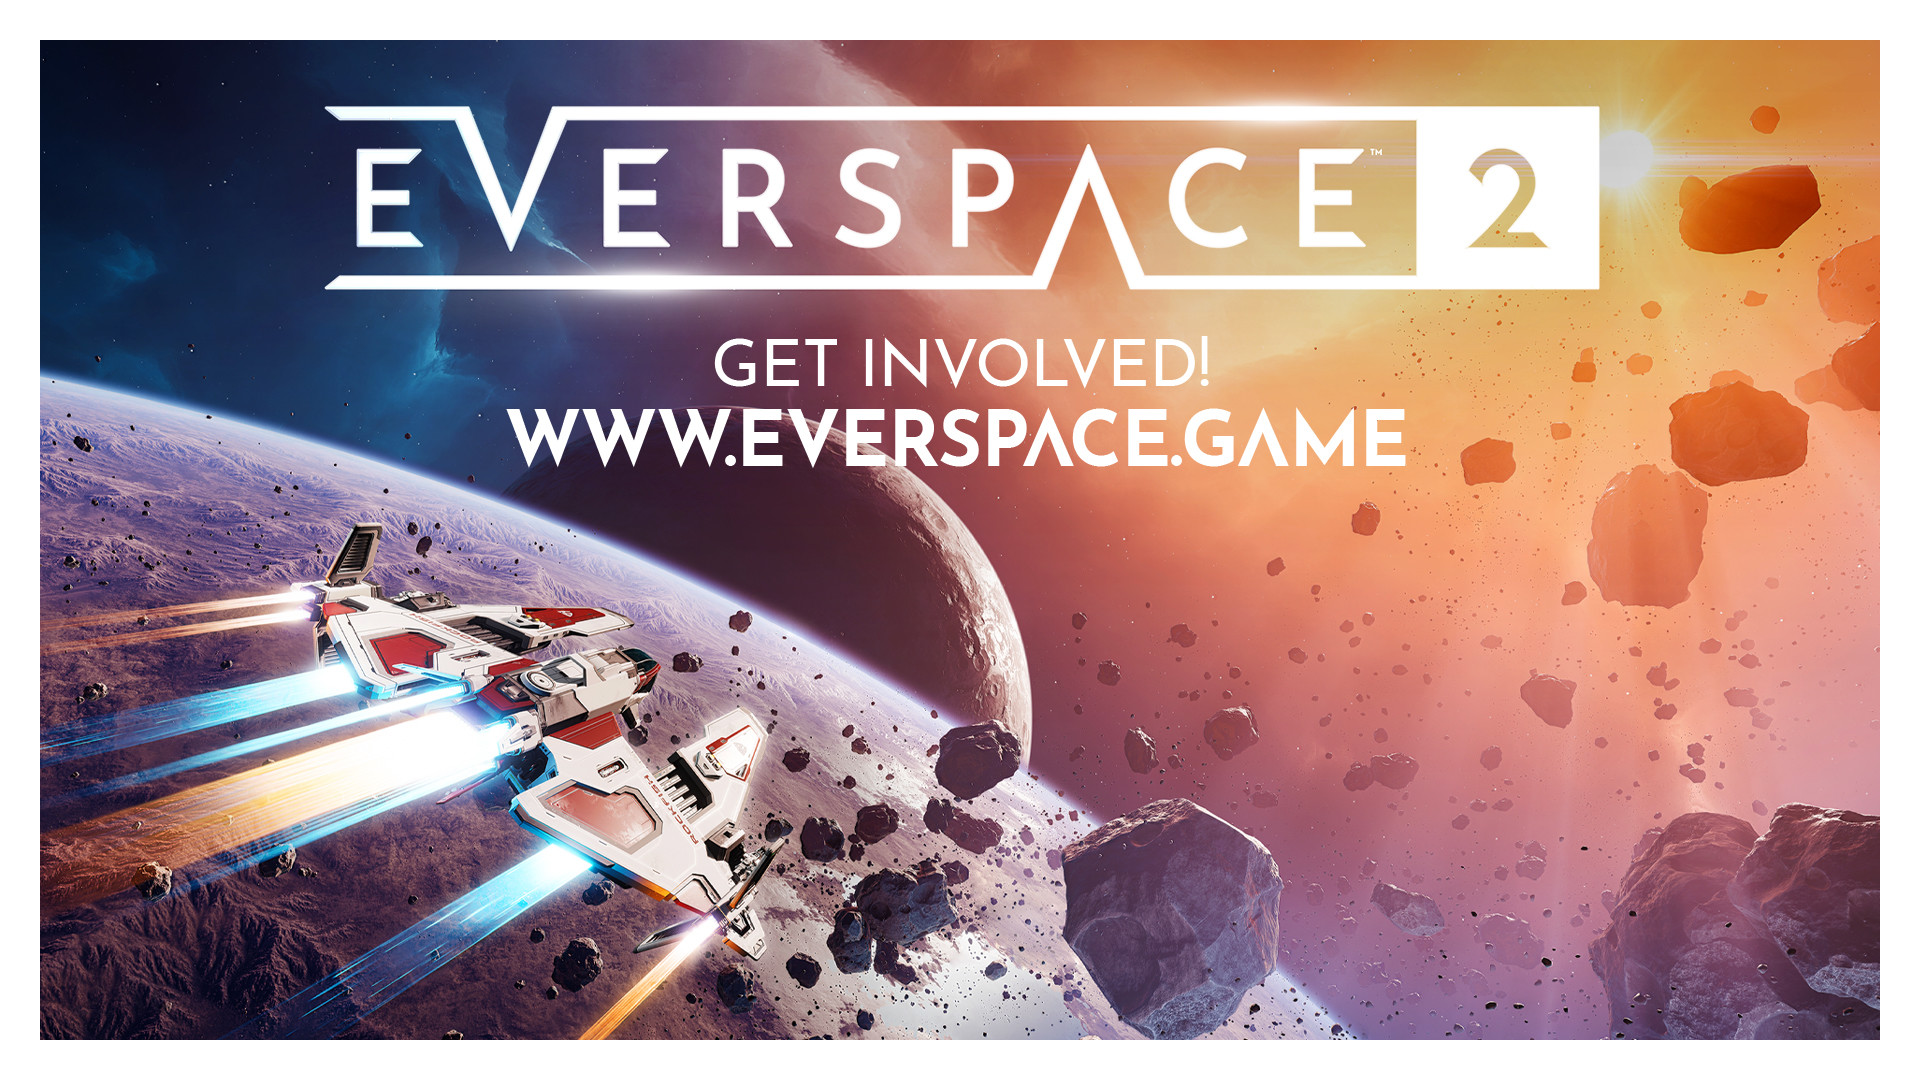 Find the best laptop for EVERSPACE